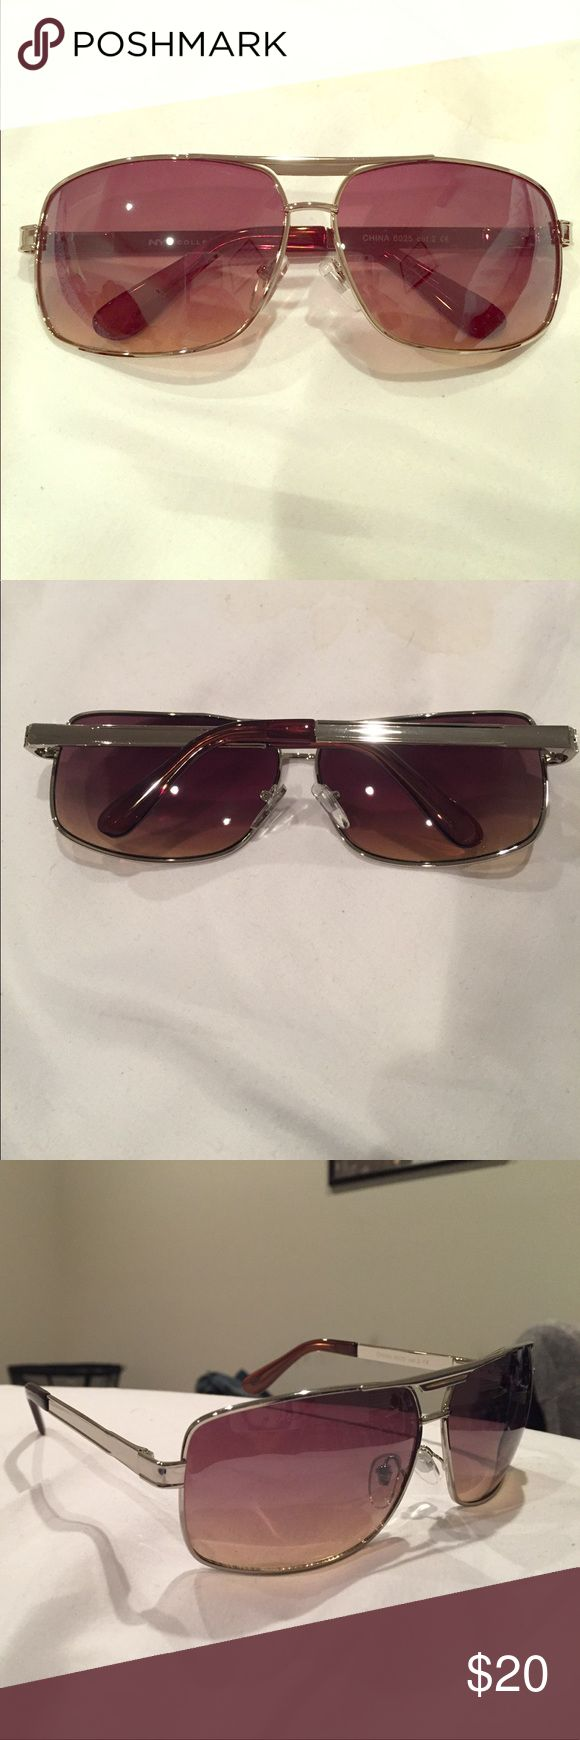 Never been worn NYS sunglasses. Never been worn NYS sunnies! Sunglasses bag included. Bought for my husband but they don't work for him. Am willing to negotiate. NYS Accessories Sunglasses